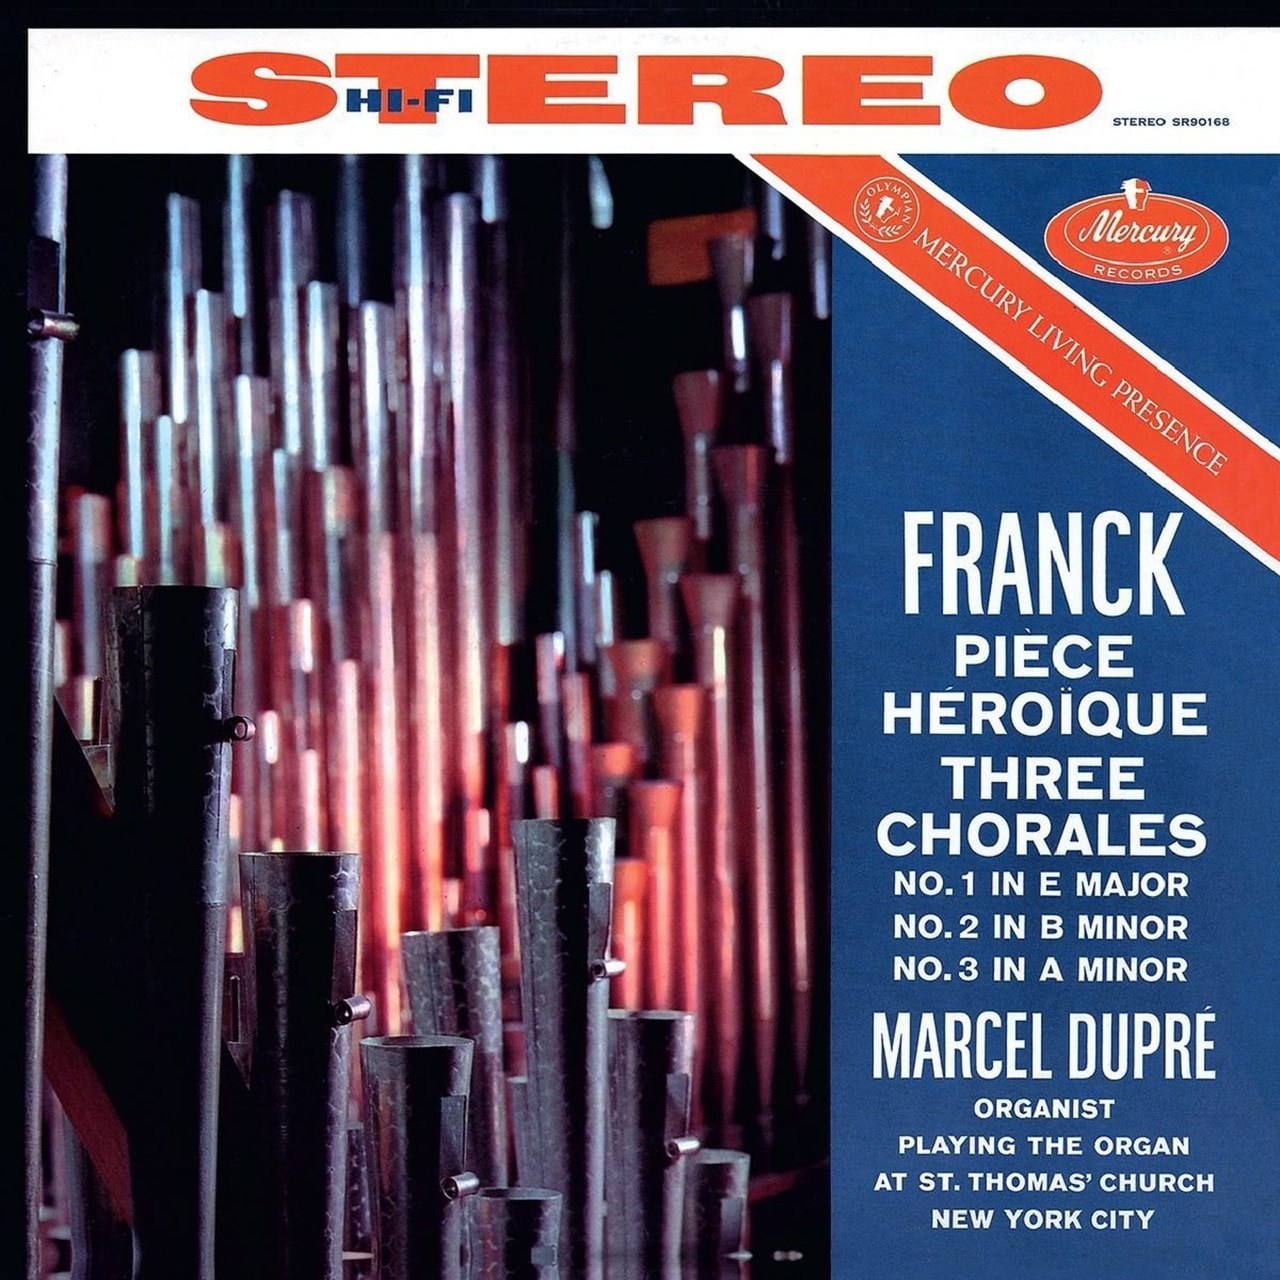 Franck: Piece Heroique/Three Chorales - 1